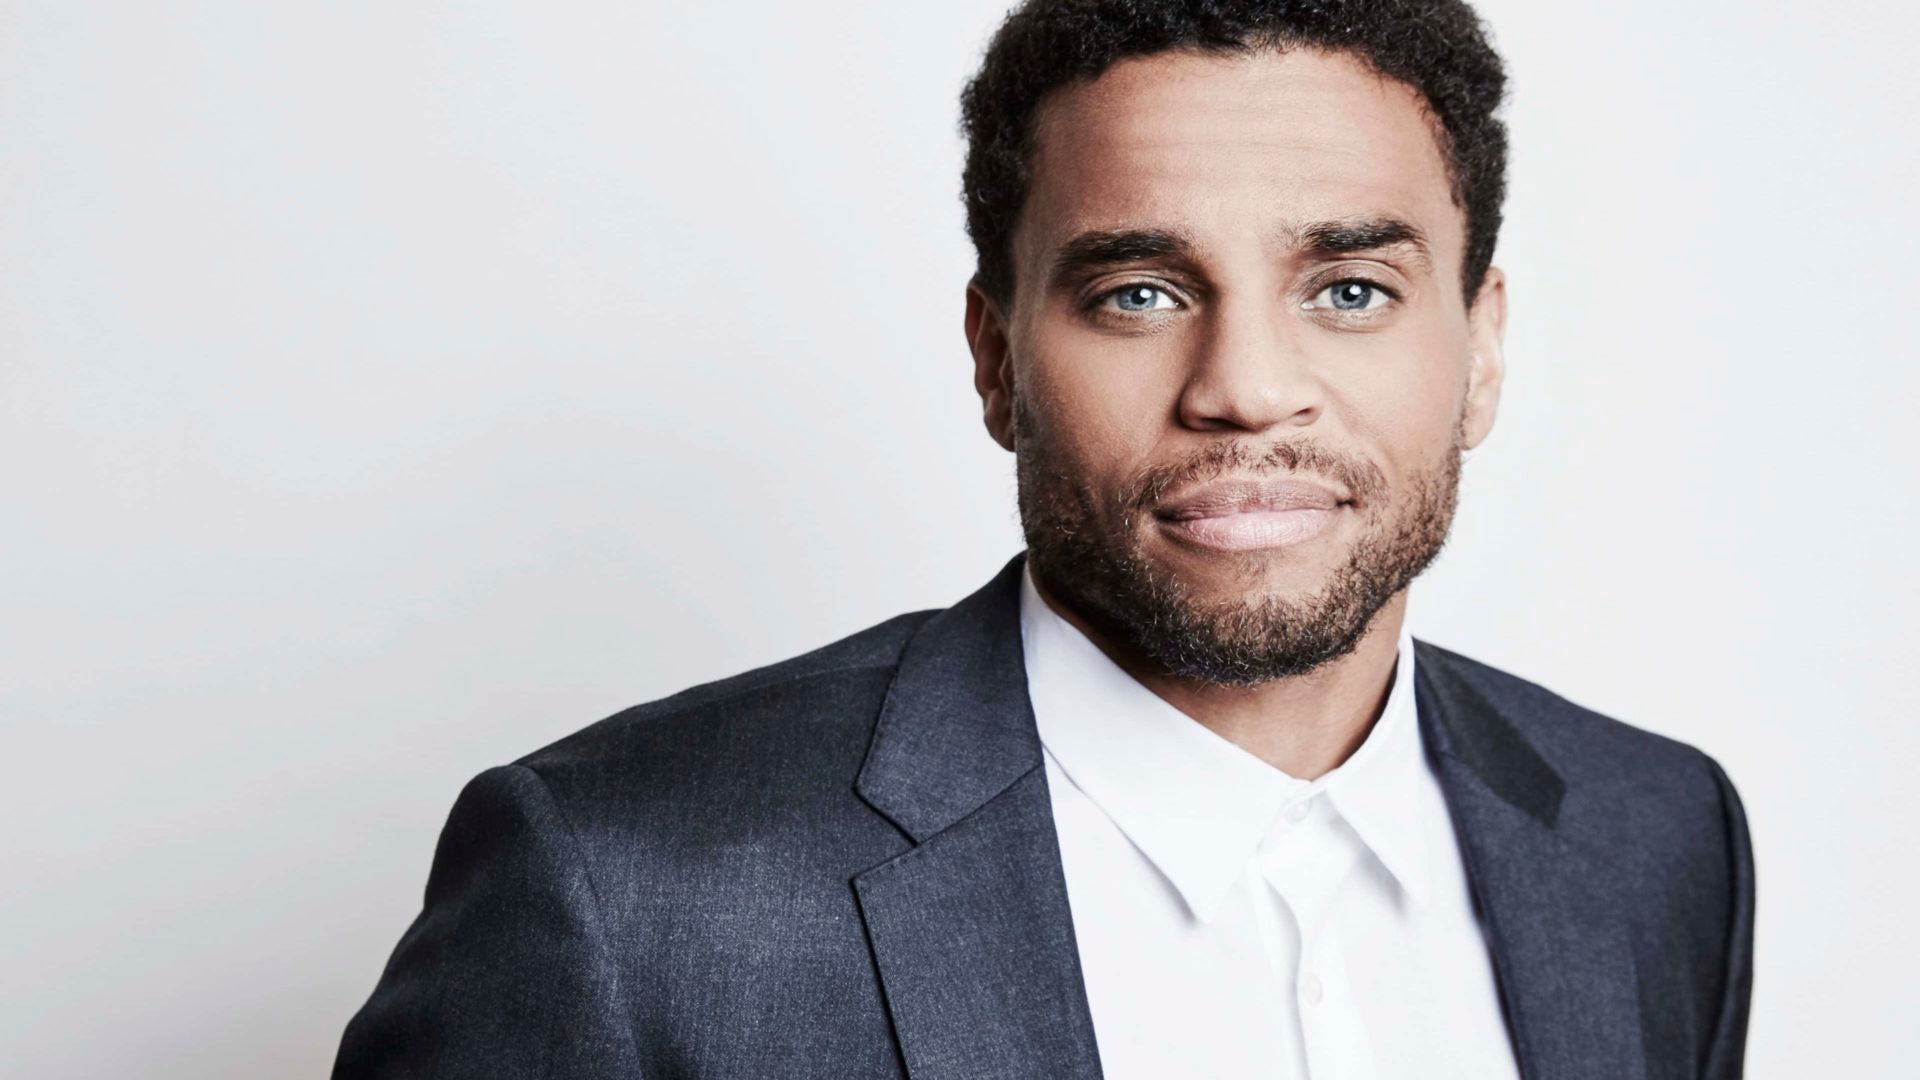 'The Intruder' Star Michael Ealy Isn't Comfortable With A Gun In His Home